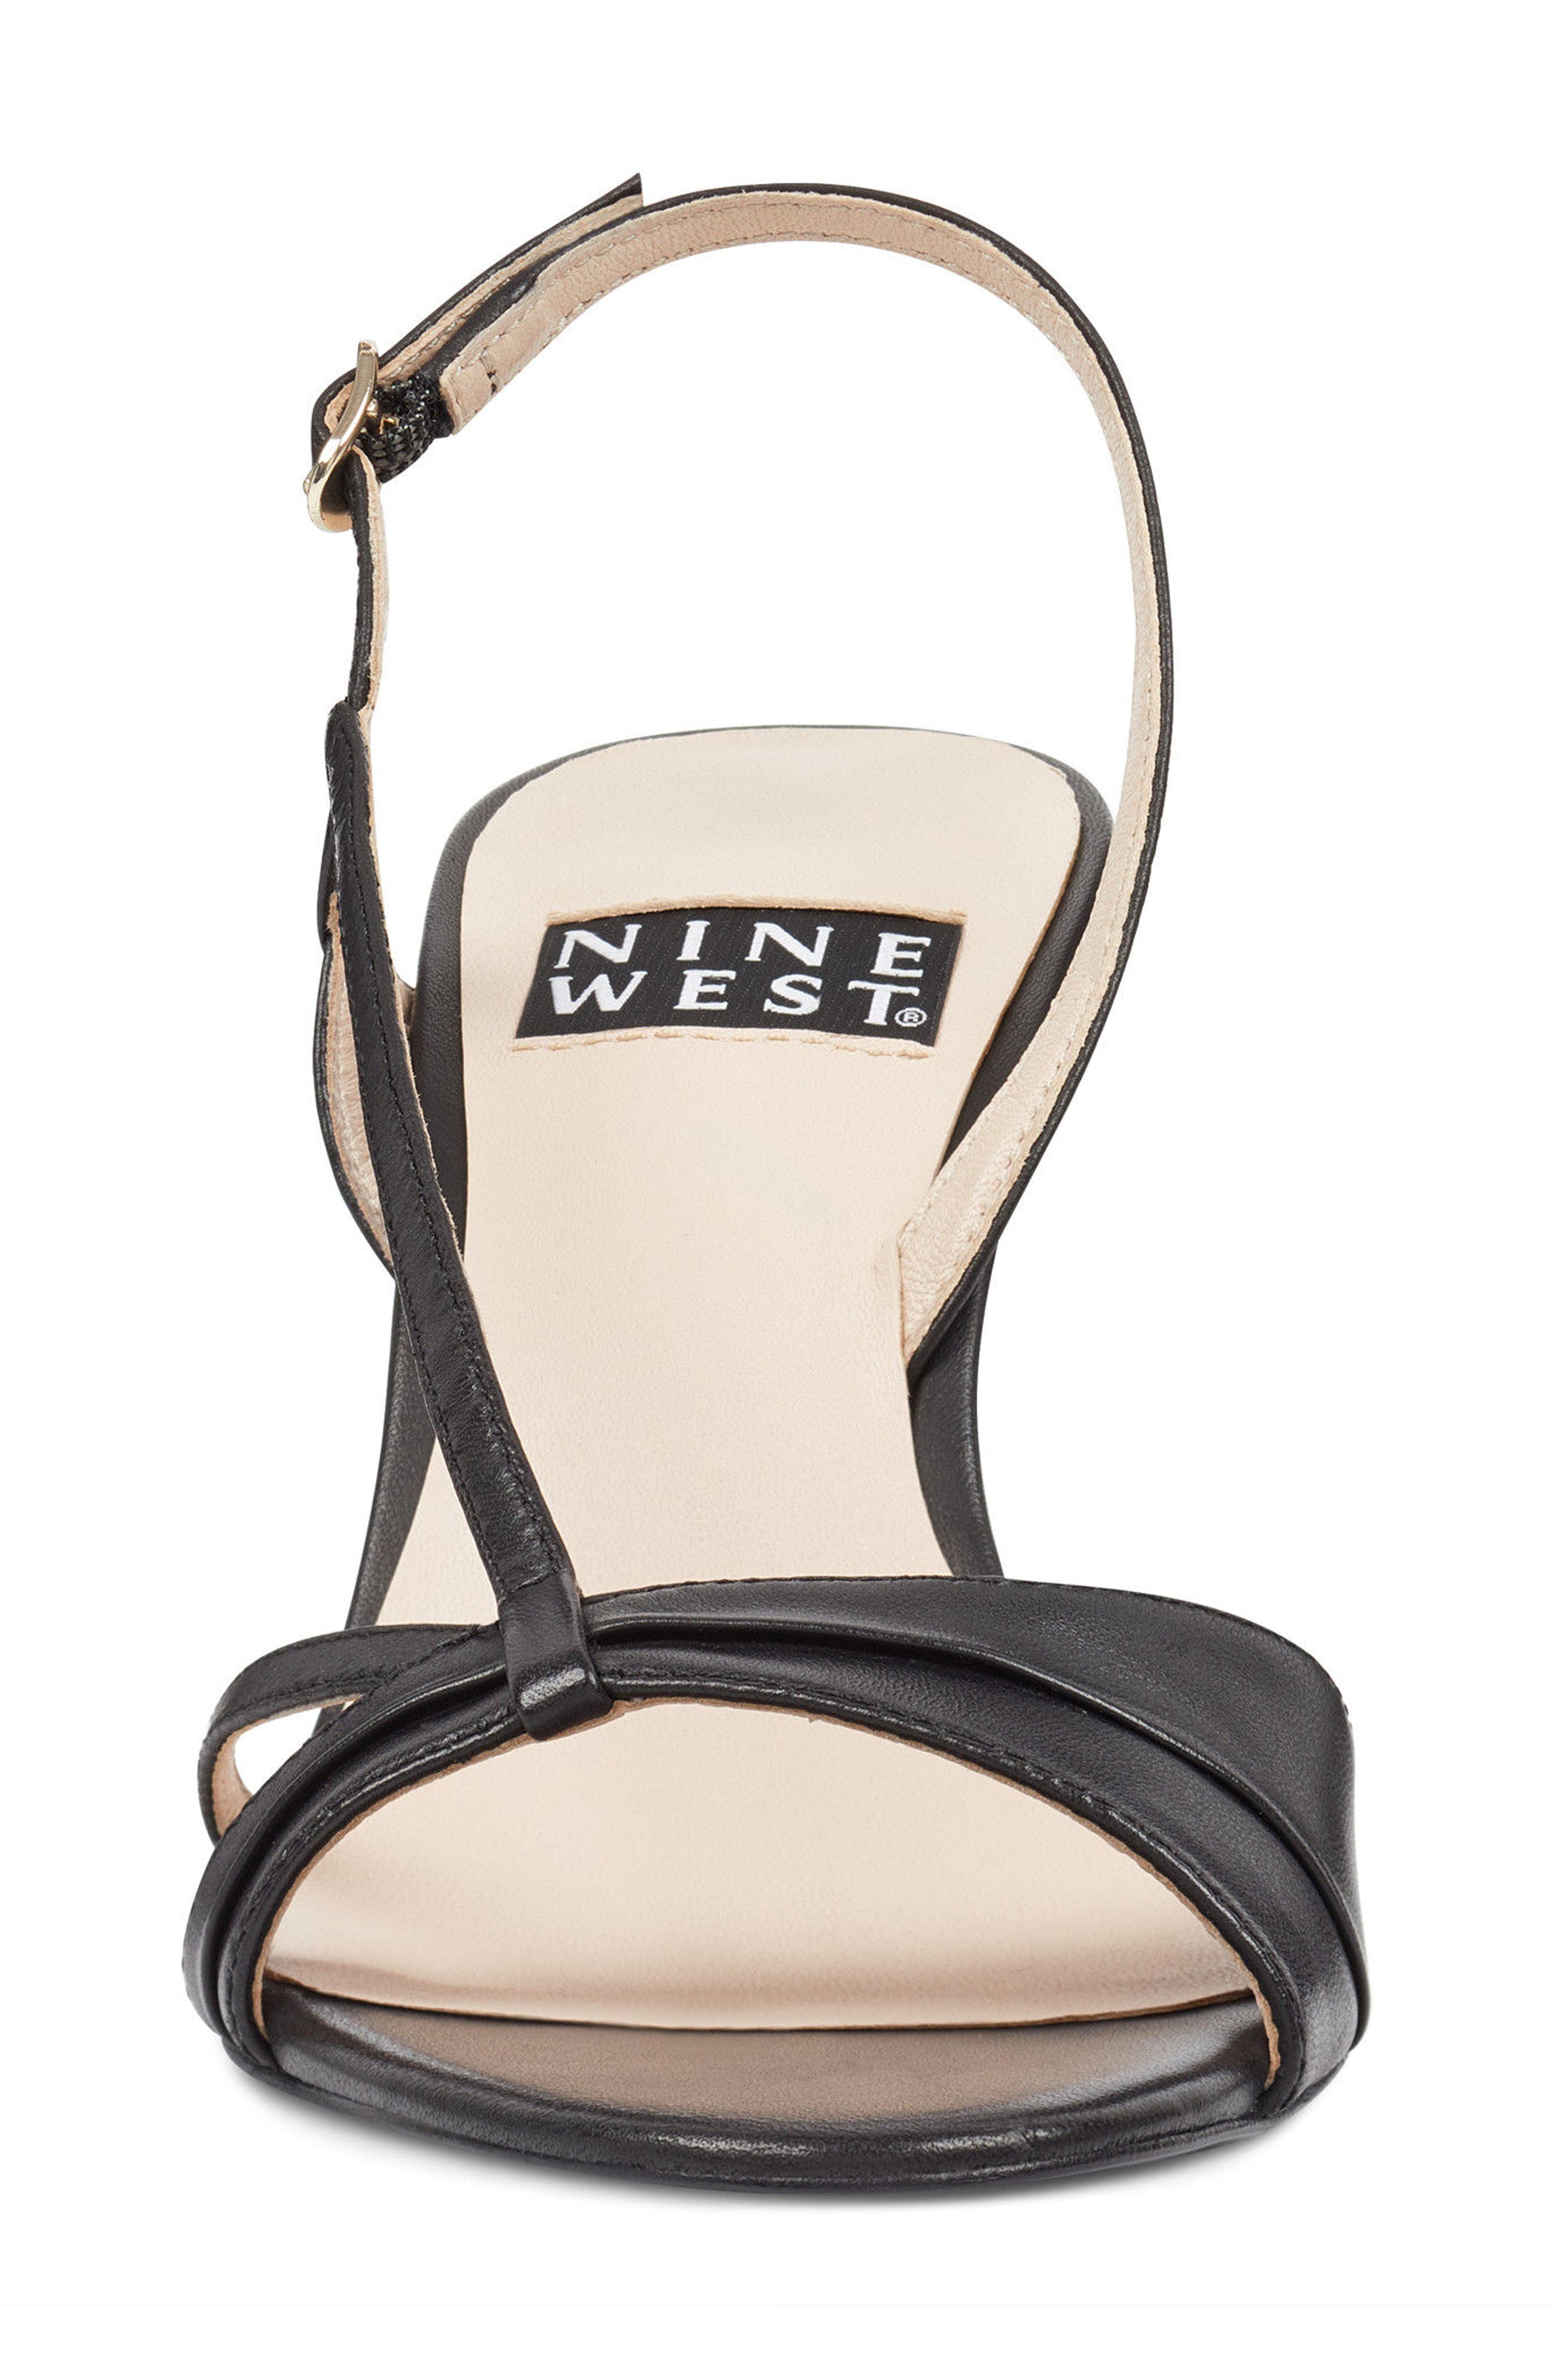 Accolia - 40th Anniversary Capsule Collection Sandal,                             Alternate thumbnail 4, color,                             BLACK LEATHER